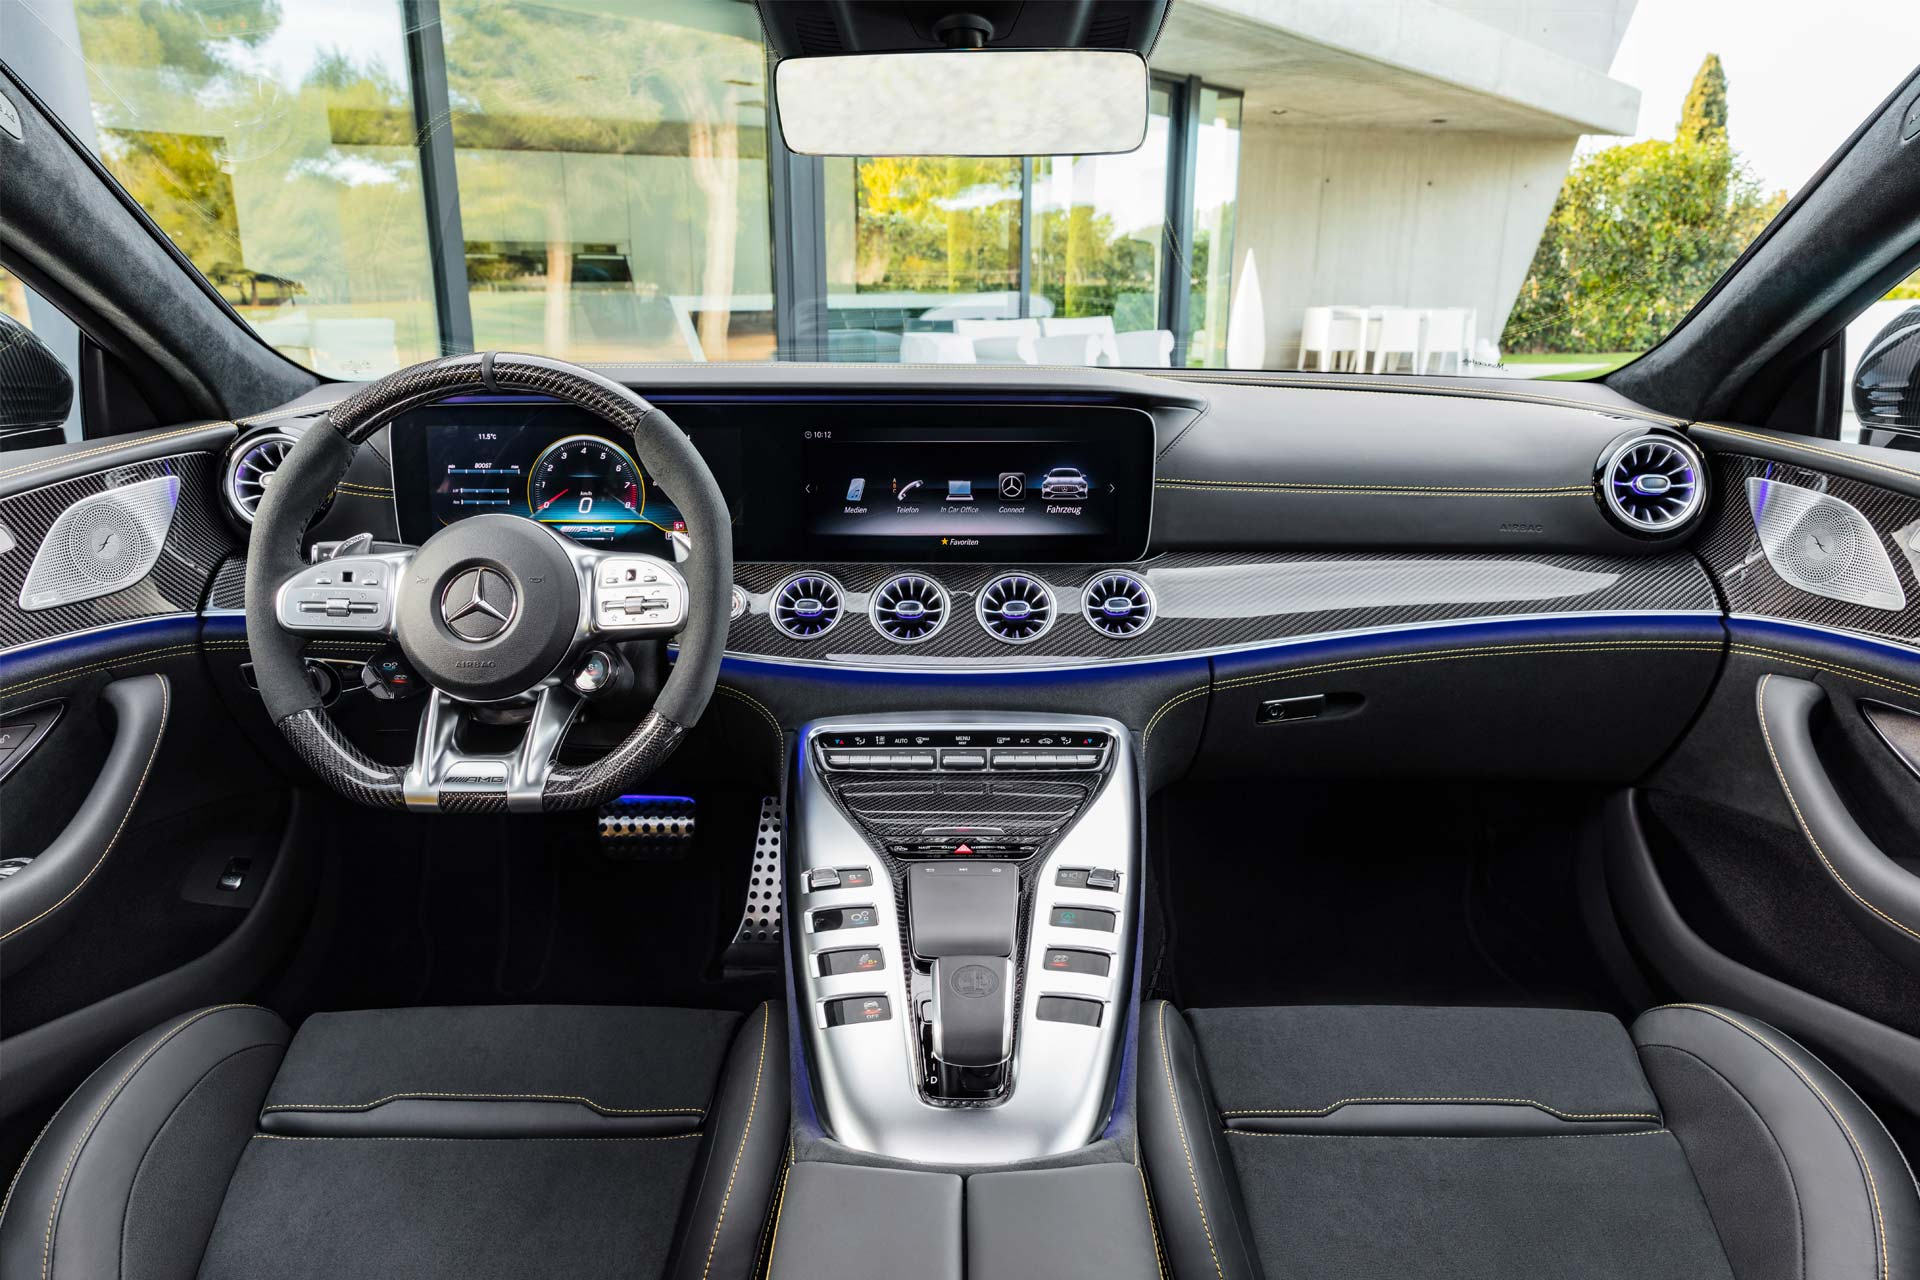 Mercedes-AMG-GT-4-Door-Coupe-Interior